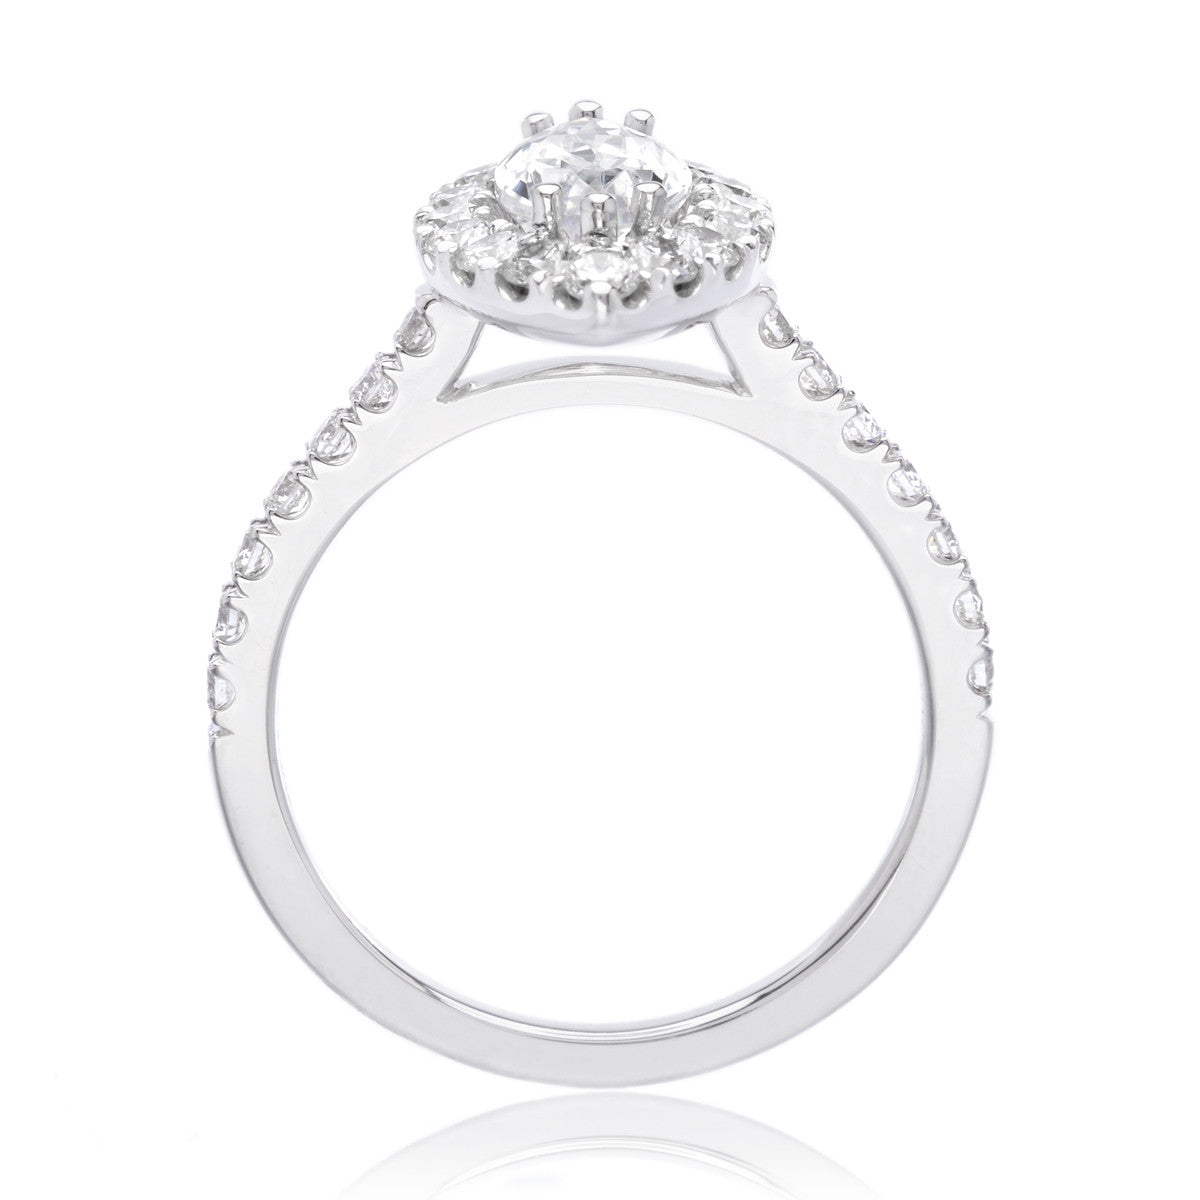 14K White Gold Classic Marquis-Cut Halo Engagement Ring Setting